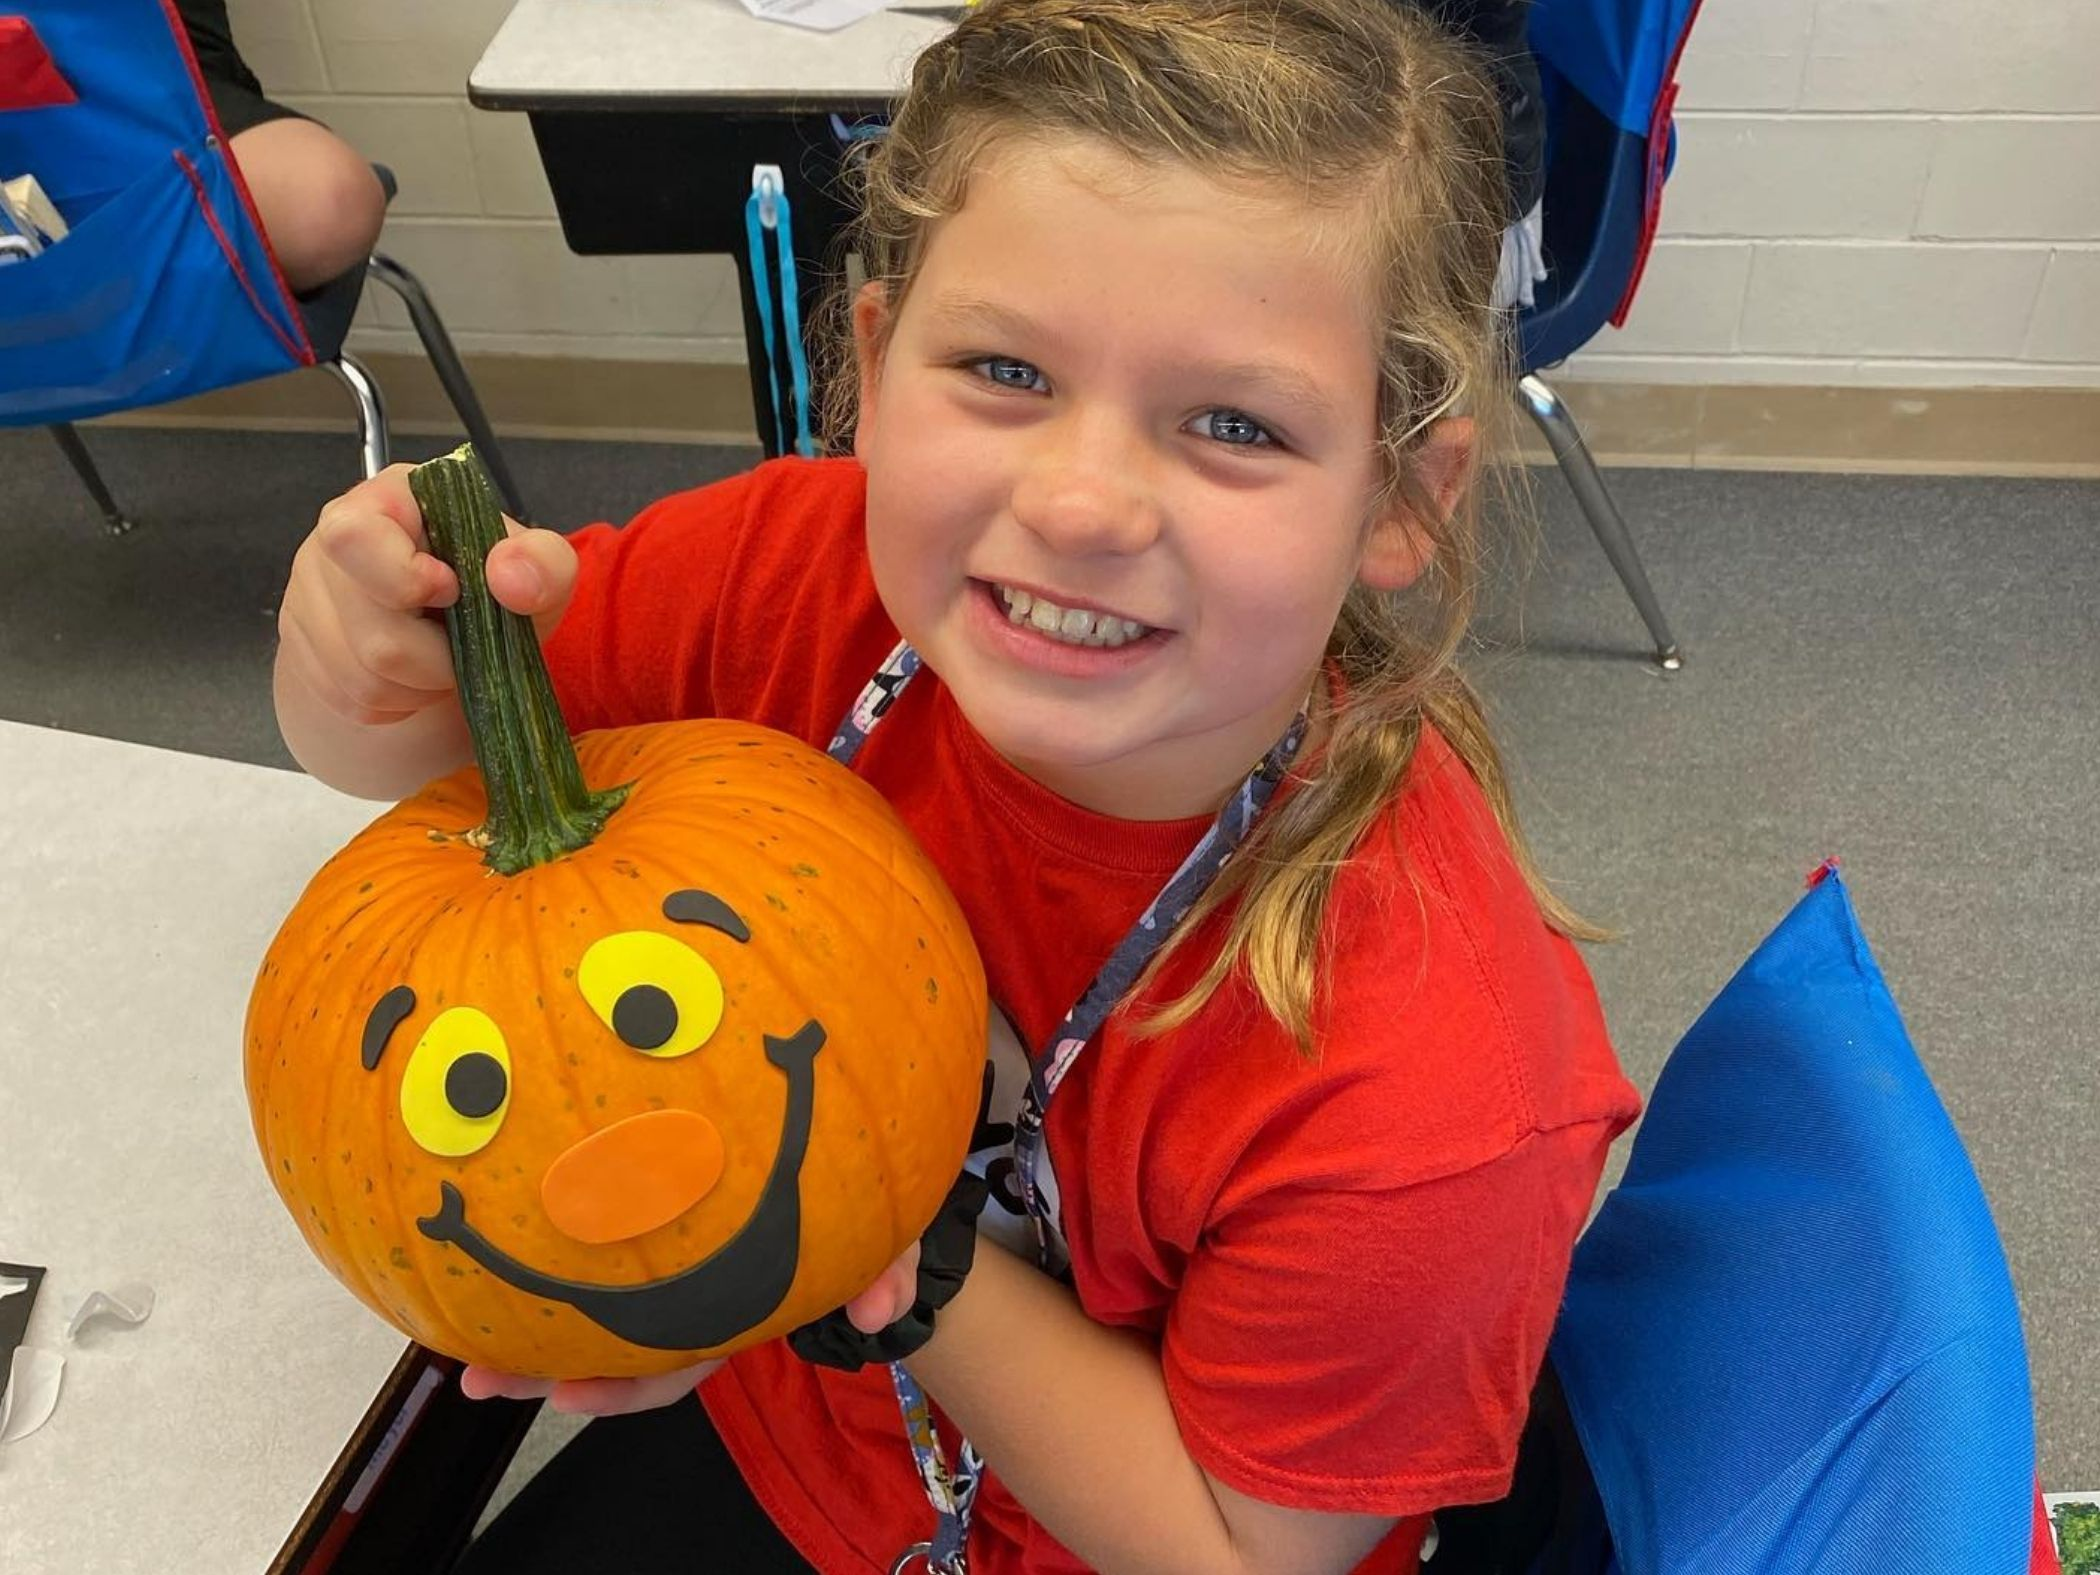 Student poses with her decorated pumpkin